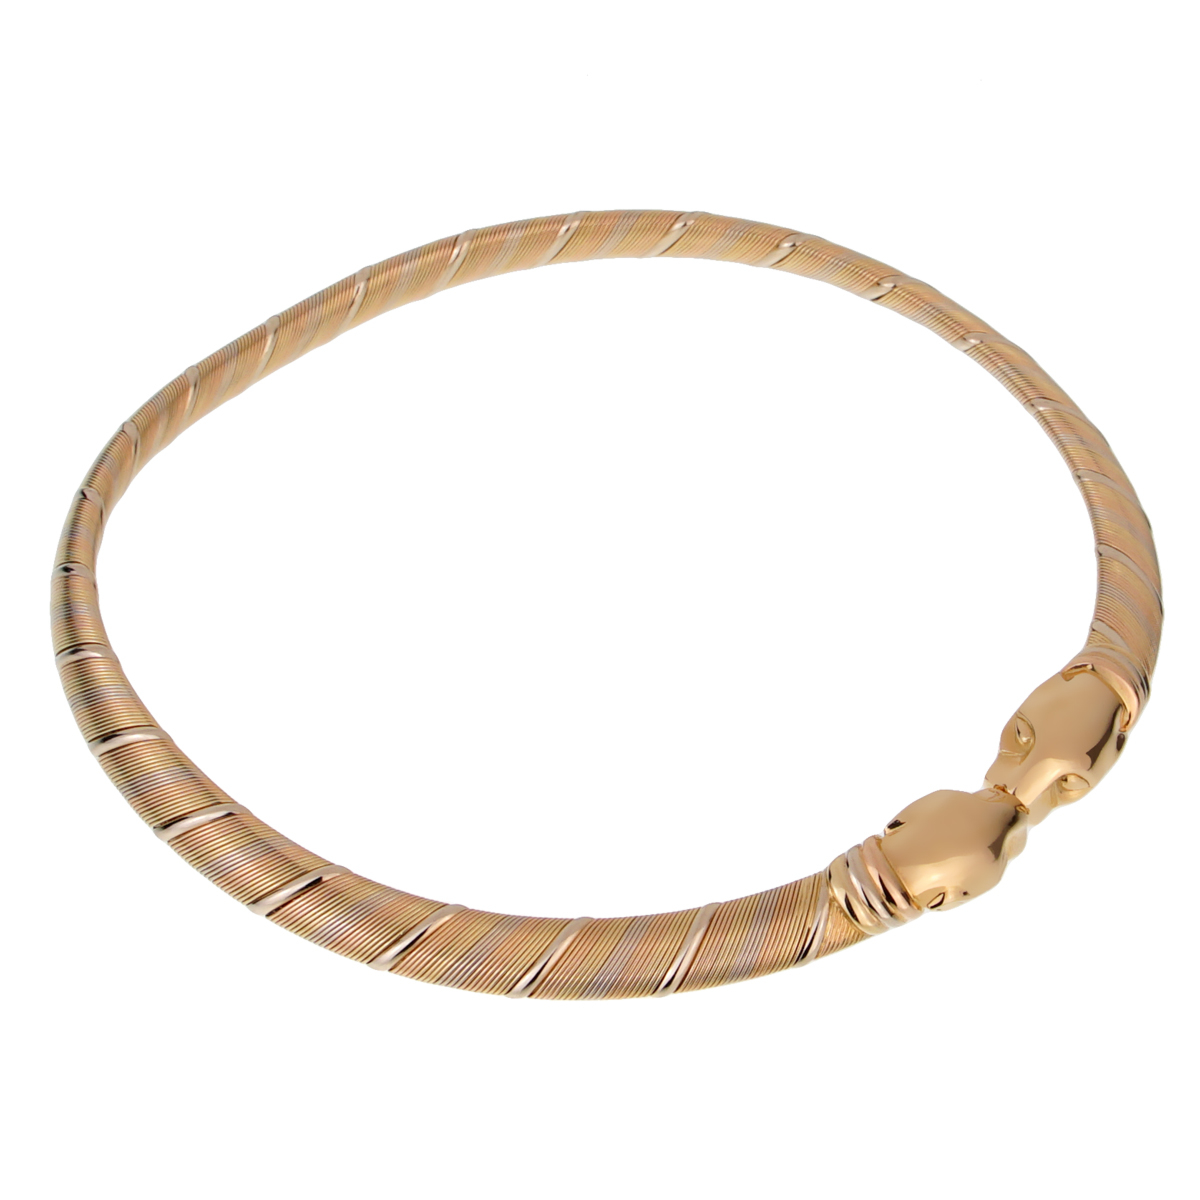 Cartier Panthere 18k Gold Choker Necklace